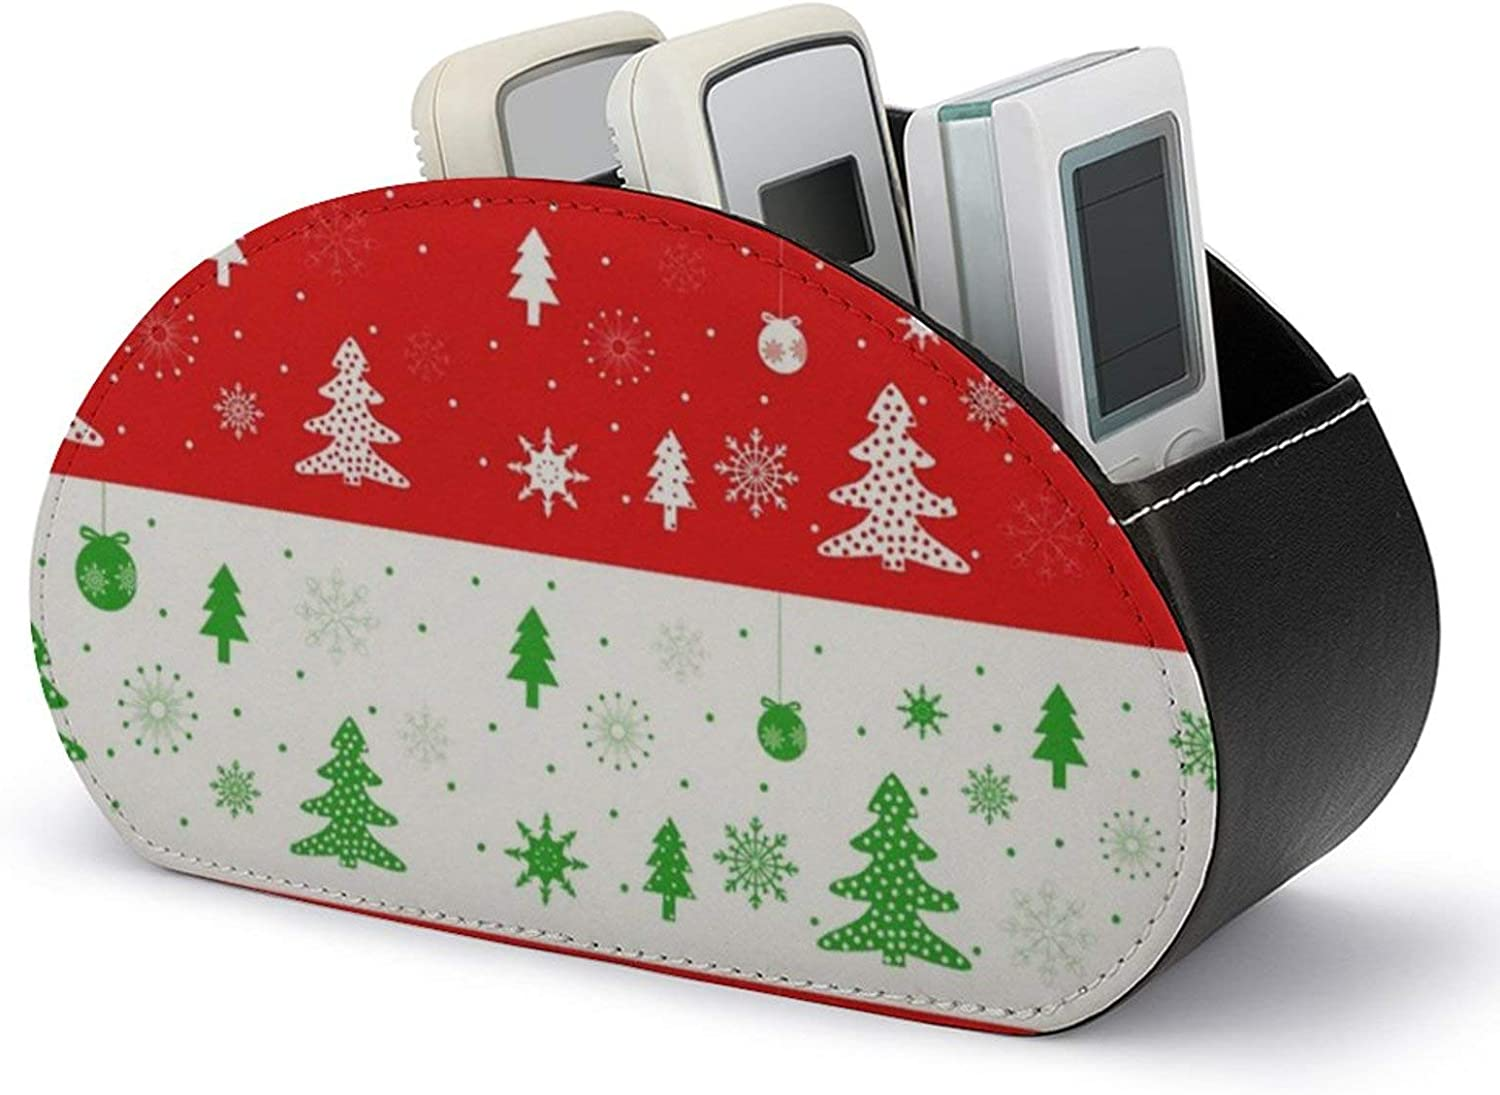 Bombing Max 77% OFF new work TV Remote Control Holder PU Christmas Leather Multi-Functi Trees